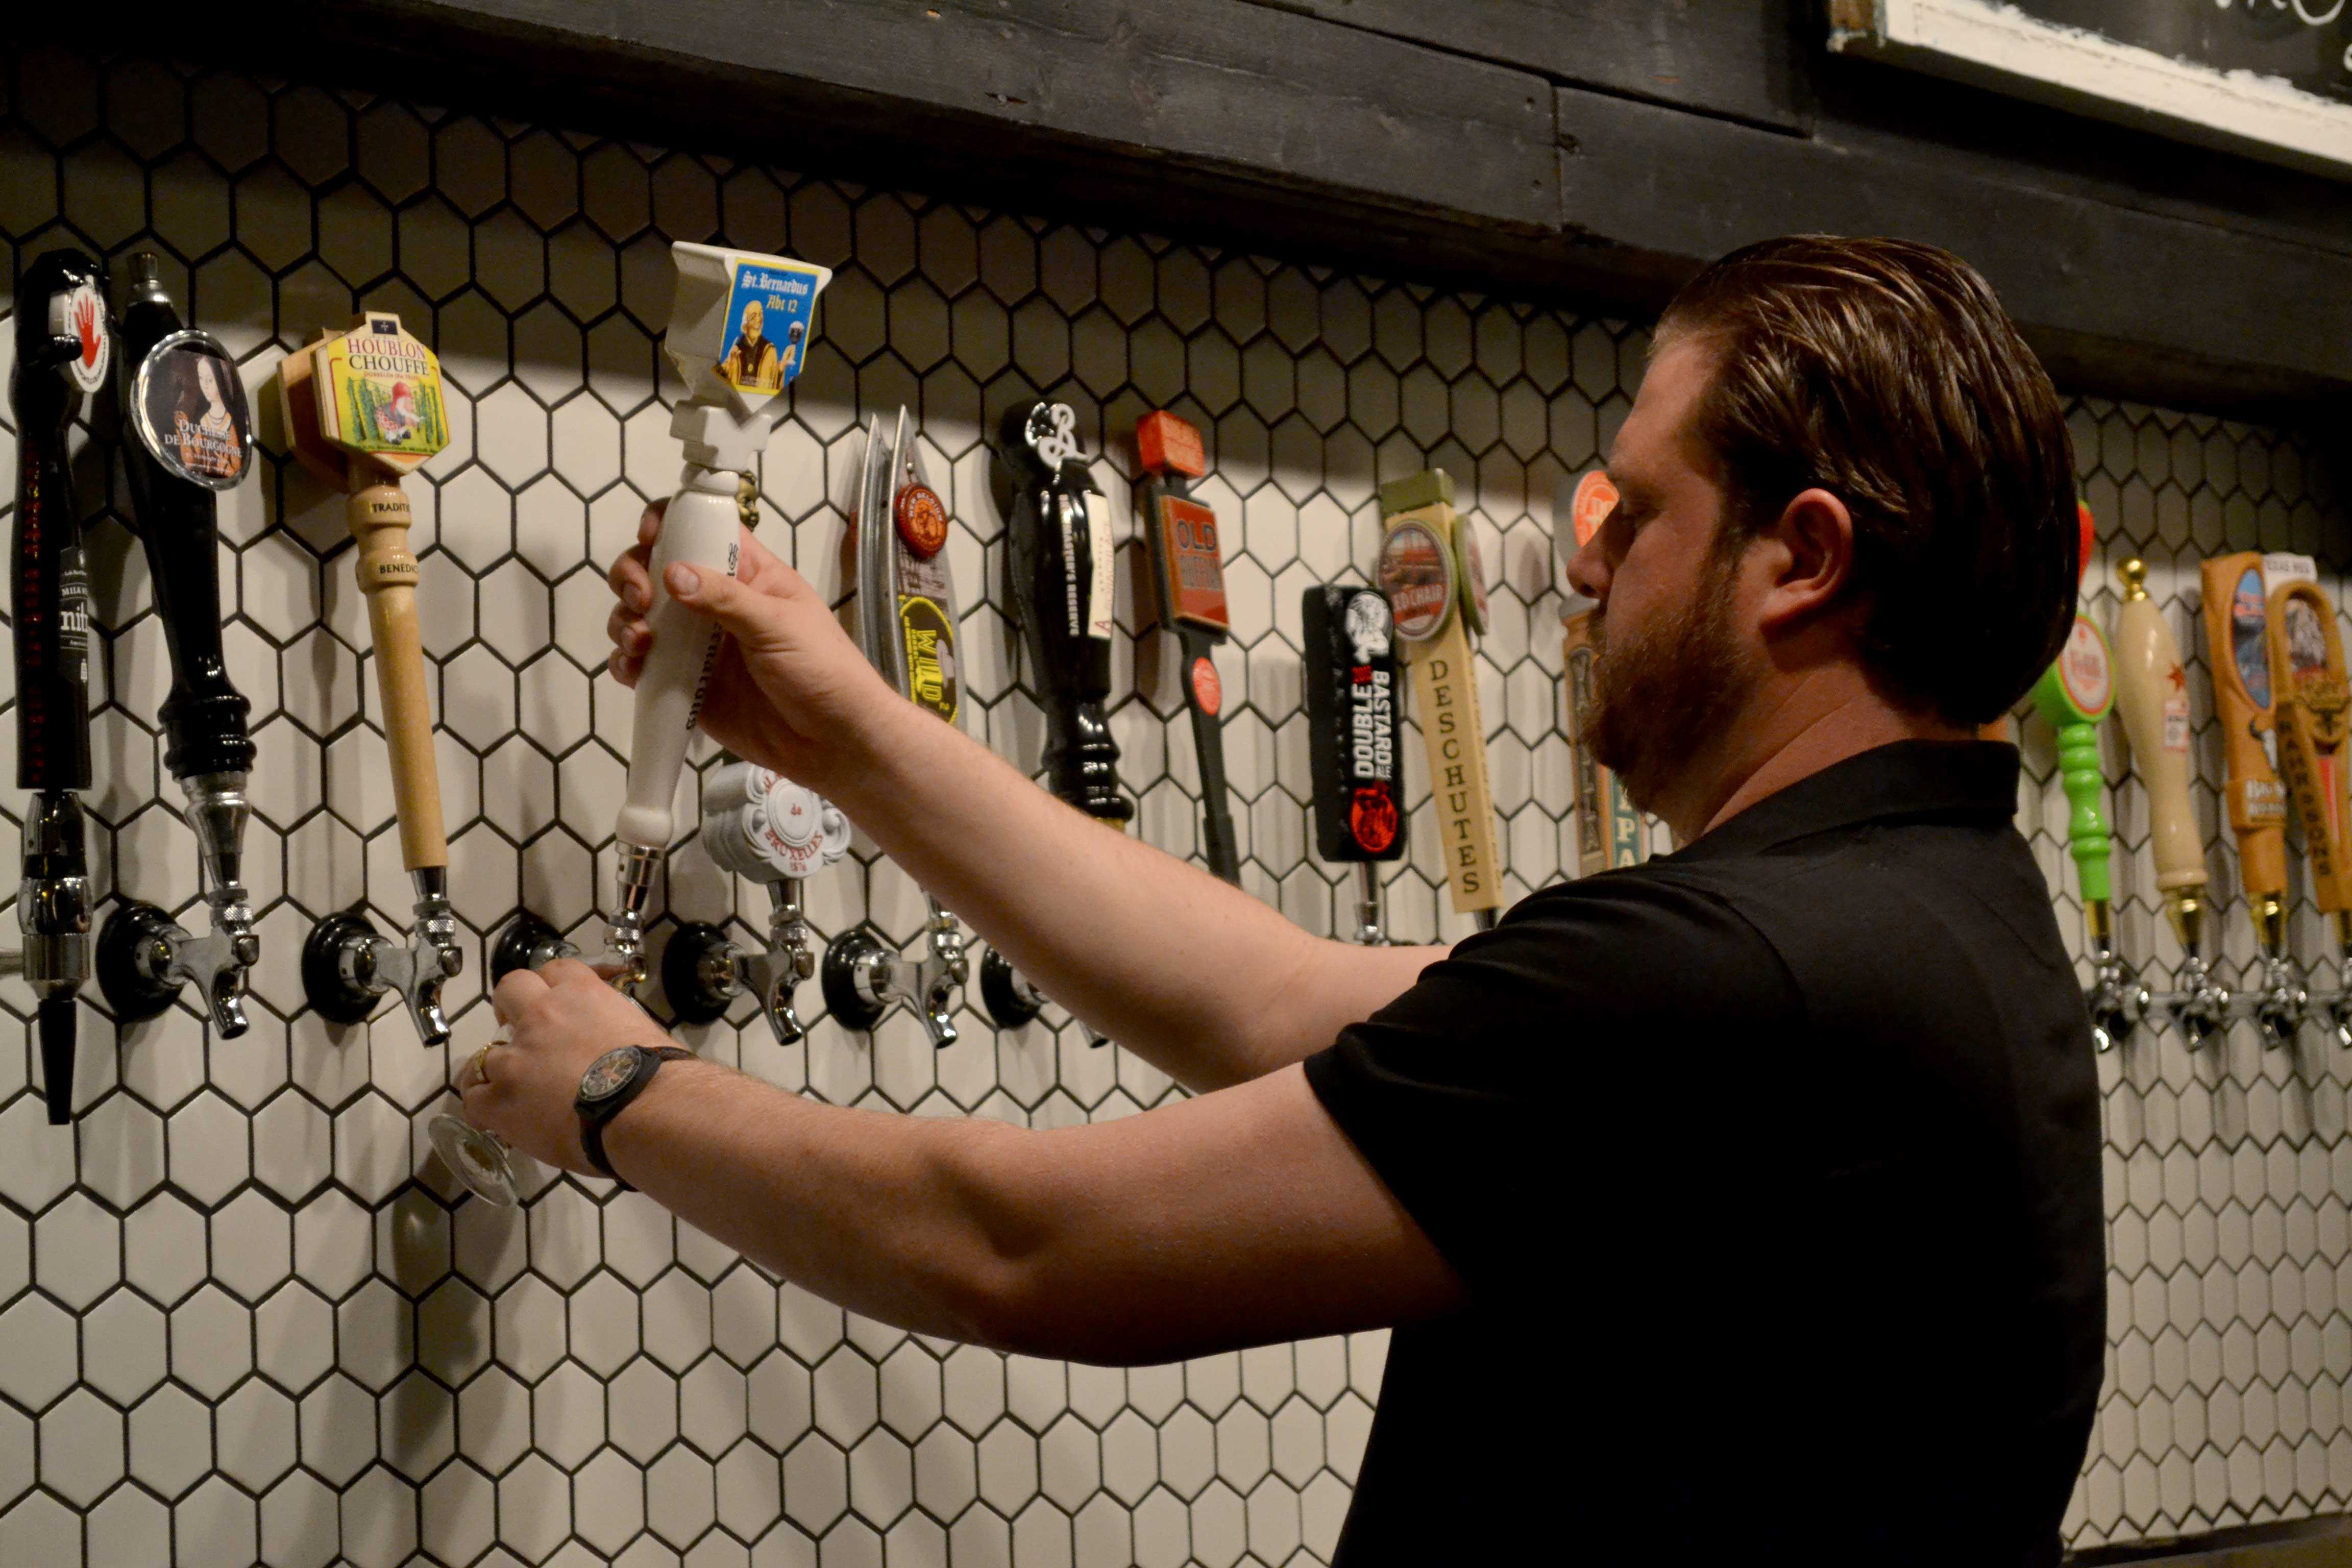 Craft and Social  is open Monday-Friday 4 p.m.-12 a.m. and until 1 a.m. on weekends.